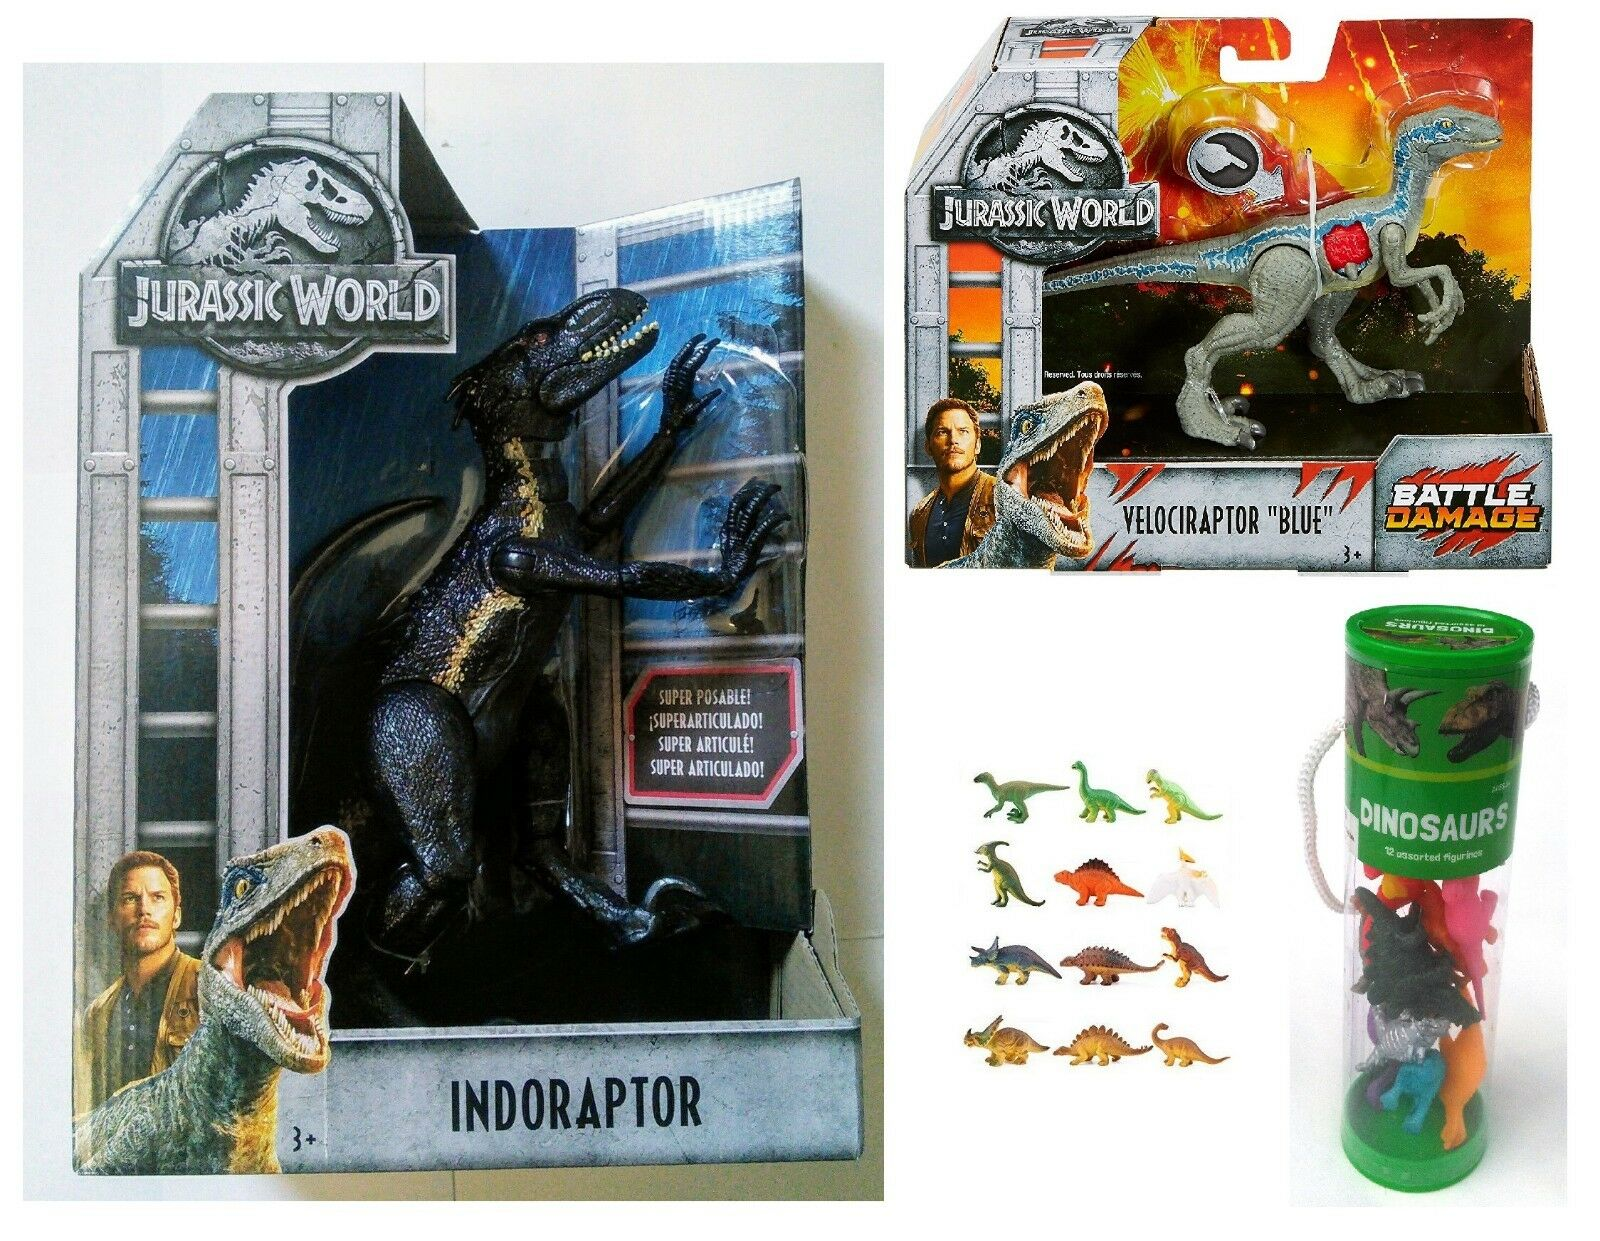 Jurassic World Indoraptor vs Velociraptor Blau with Bonus Mini Dino Figures